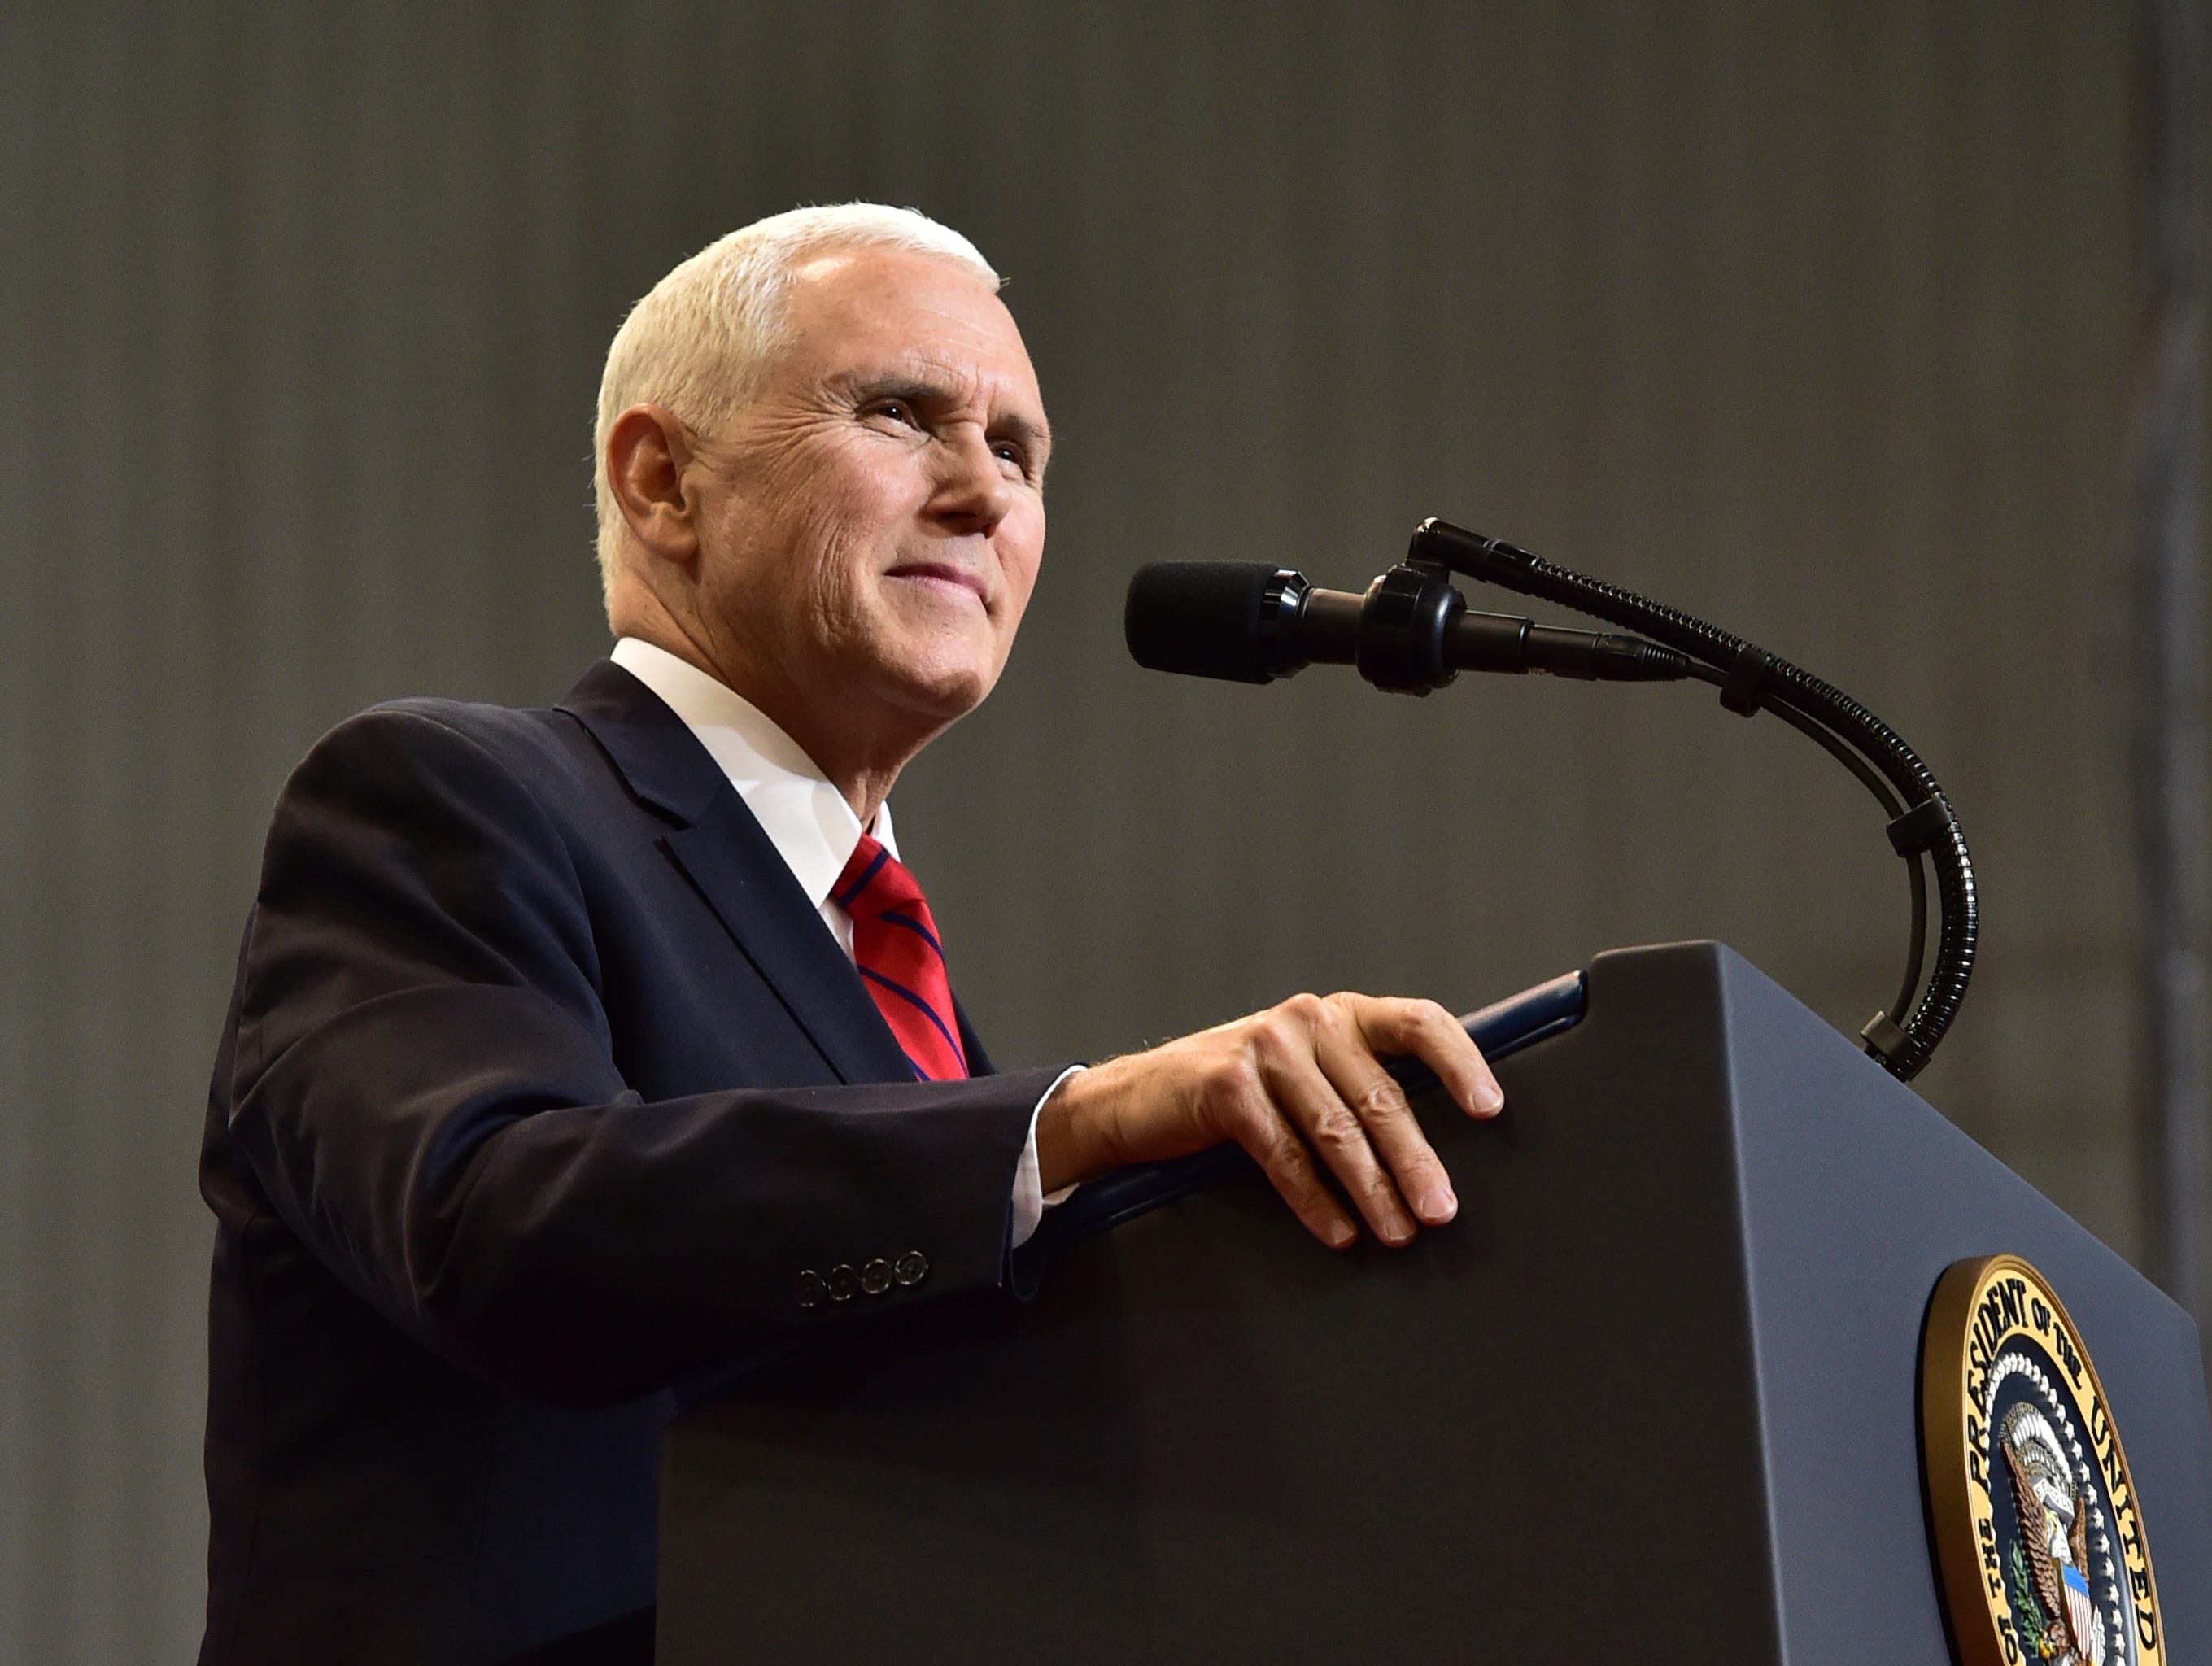 U.S. Vice President Mike Pence speaks to attendees of a rally in support of incumbent U.S. Sen. Cindy Hyde-Smith in Biloxi at the Mississippi Coast Coliseum. Monday, Nov. 26, 2018.